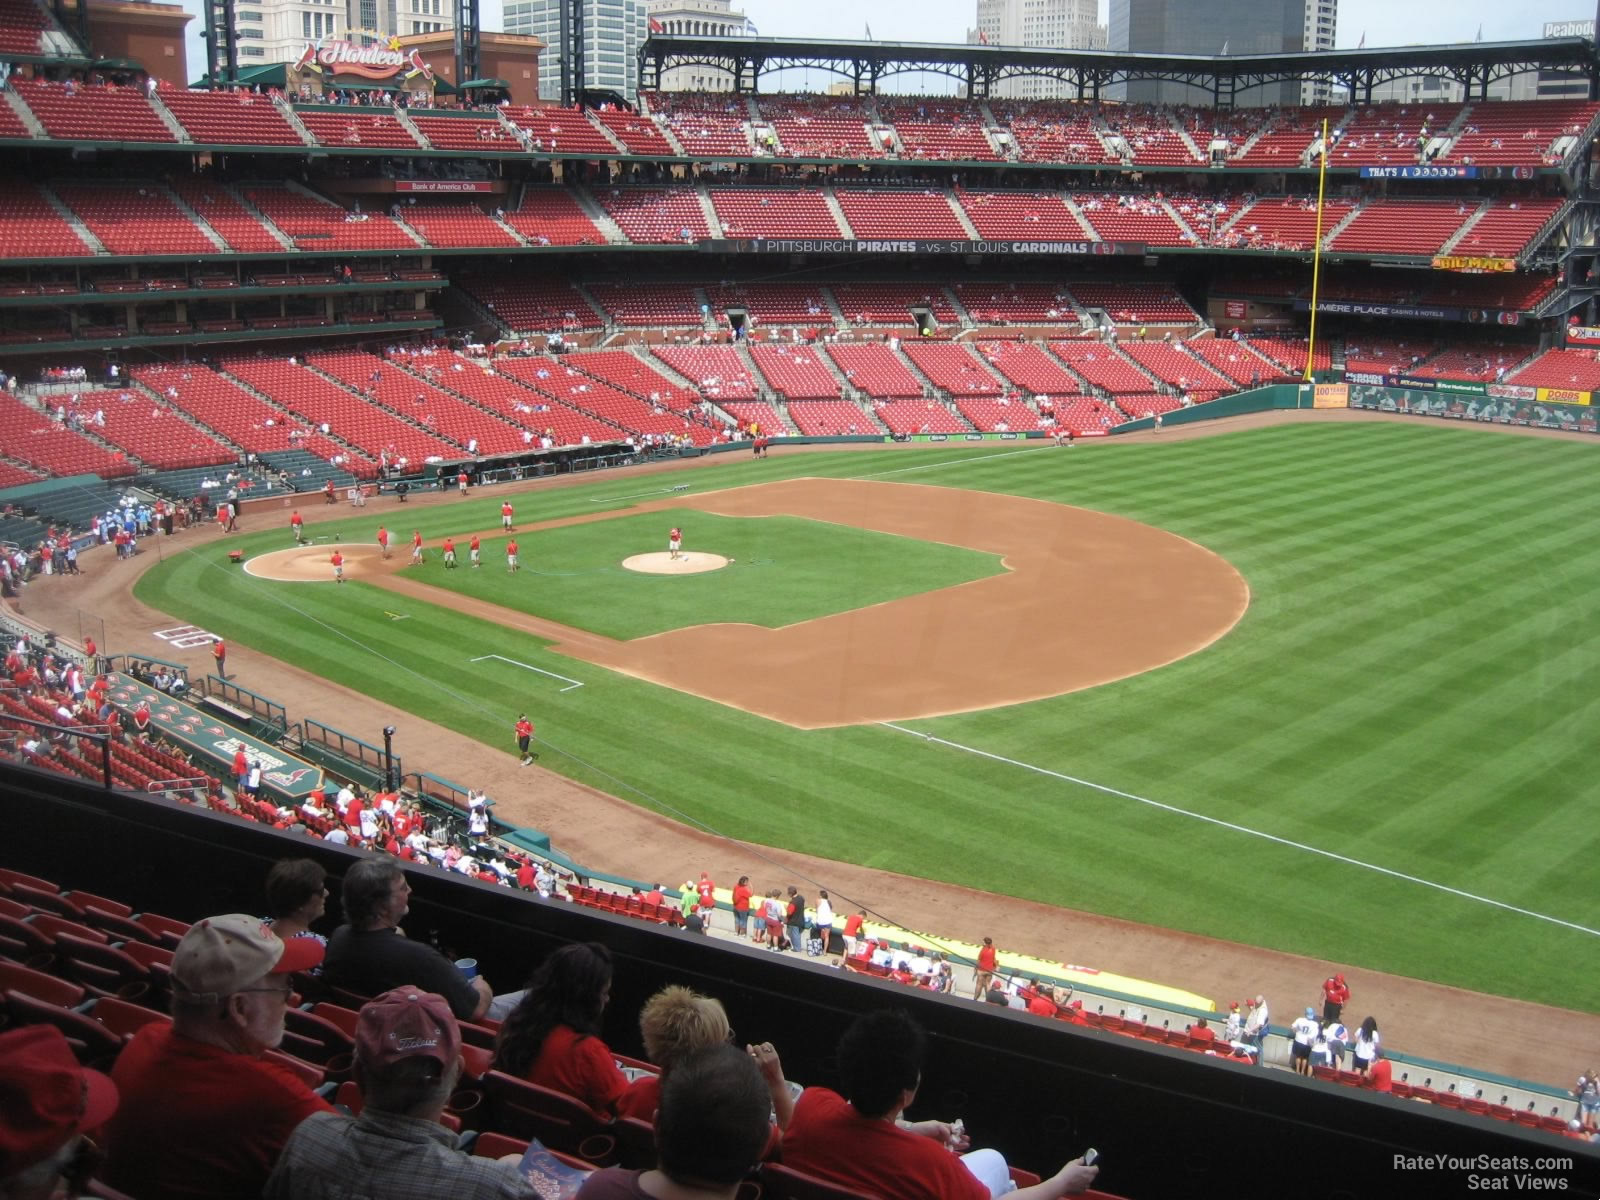 Busch Stadium Section 237 - RateYourSeats.com